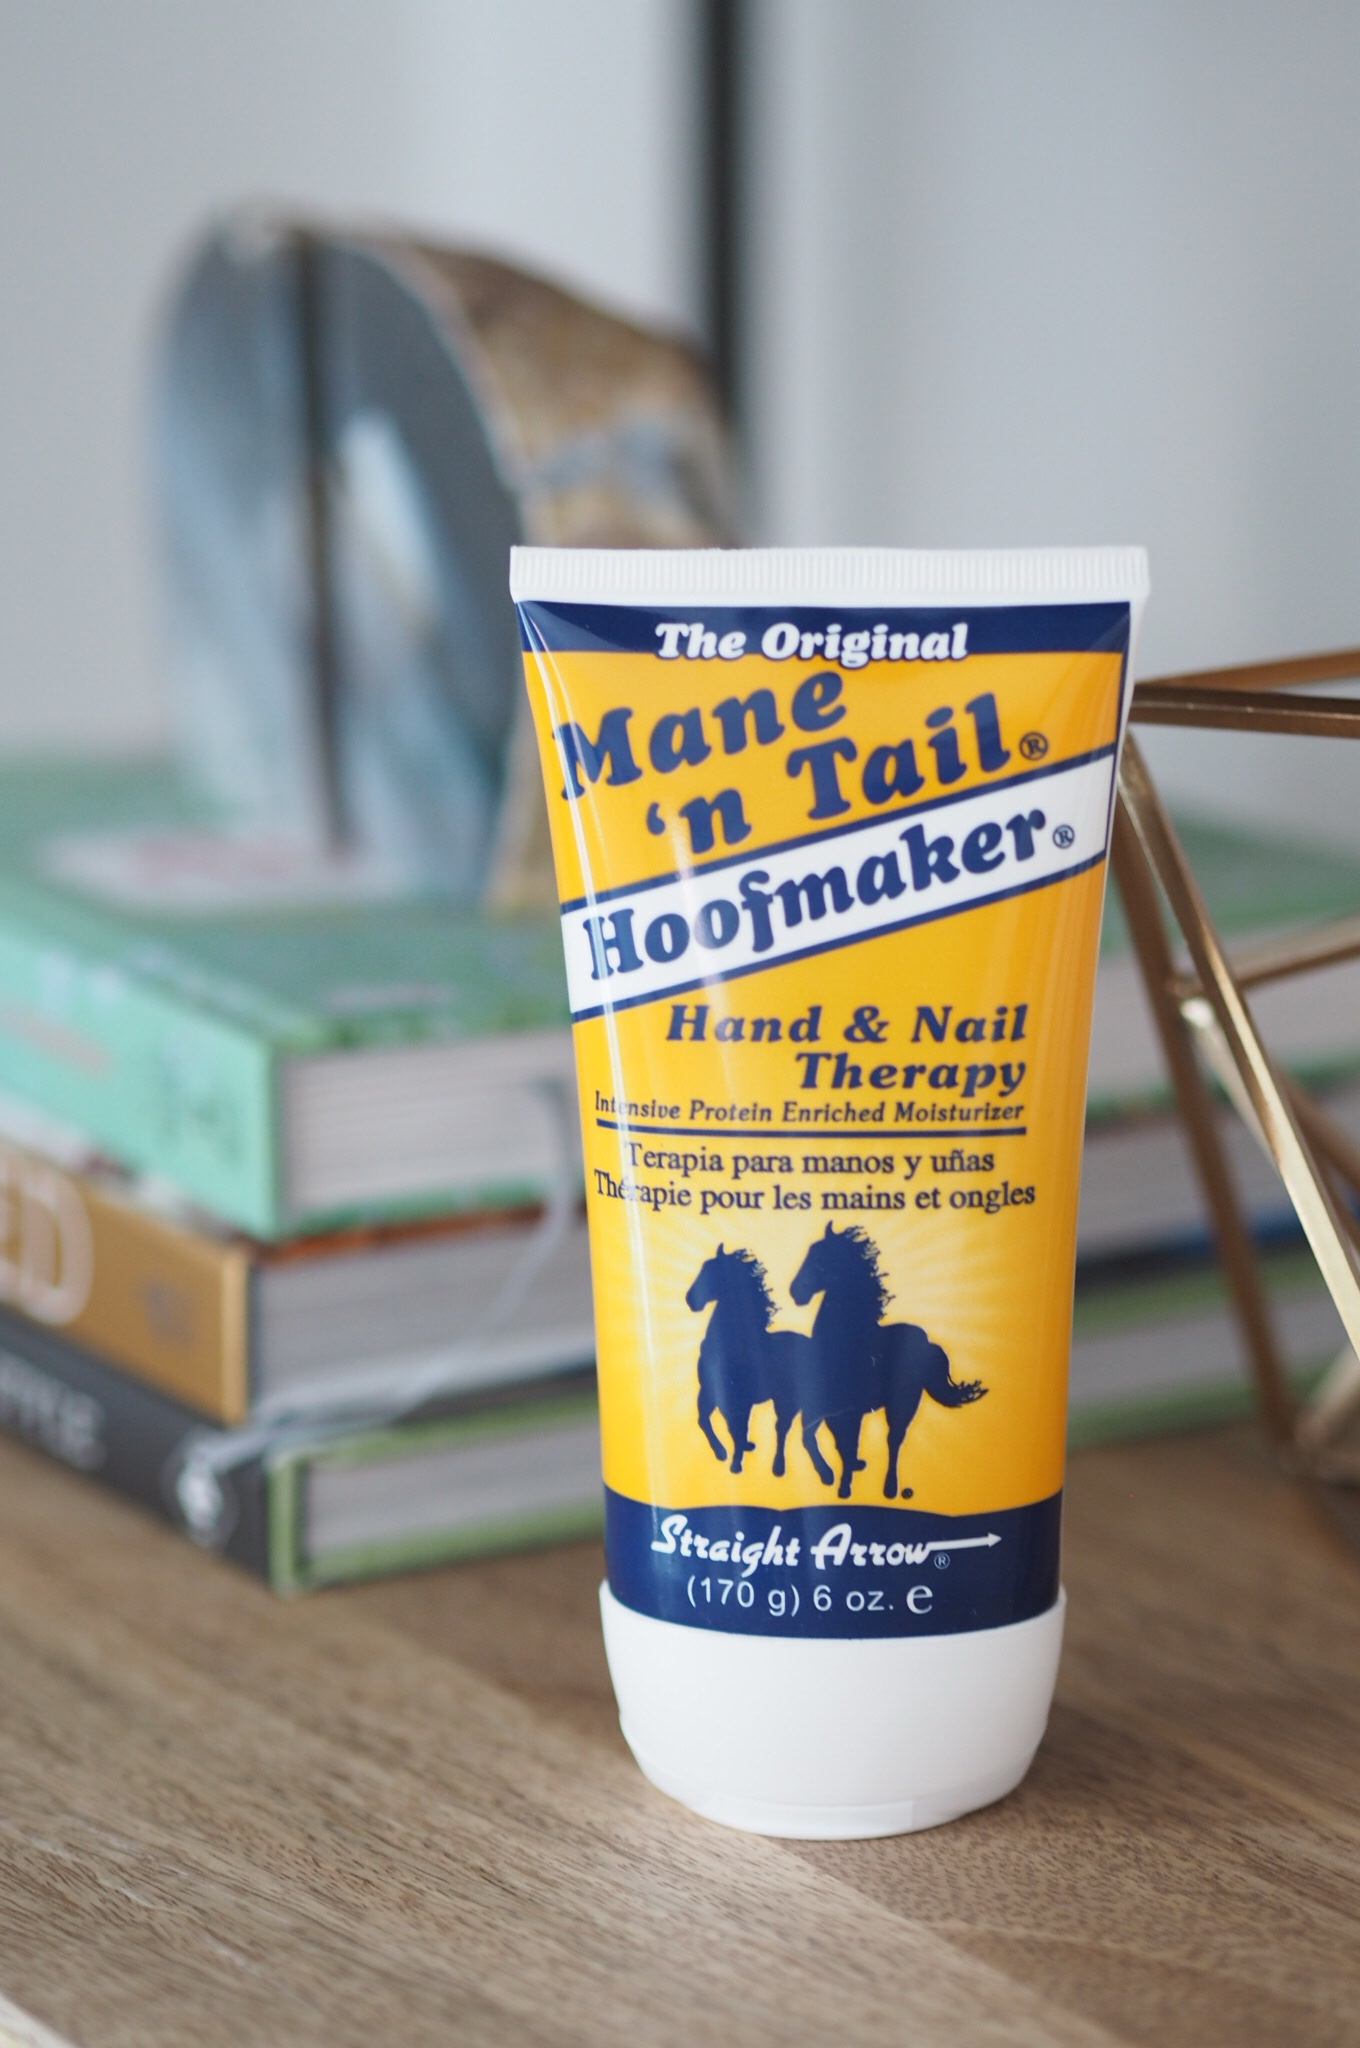 Mane N Tail Hoofmaker Hand And Nail Therapy